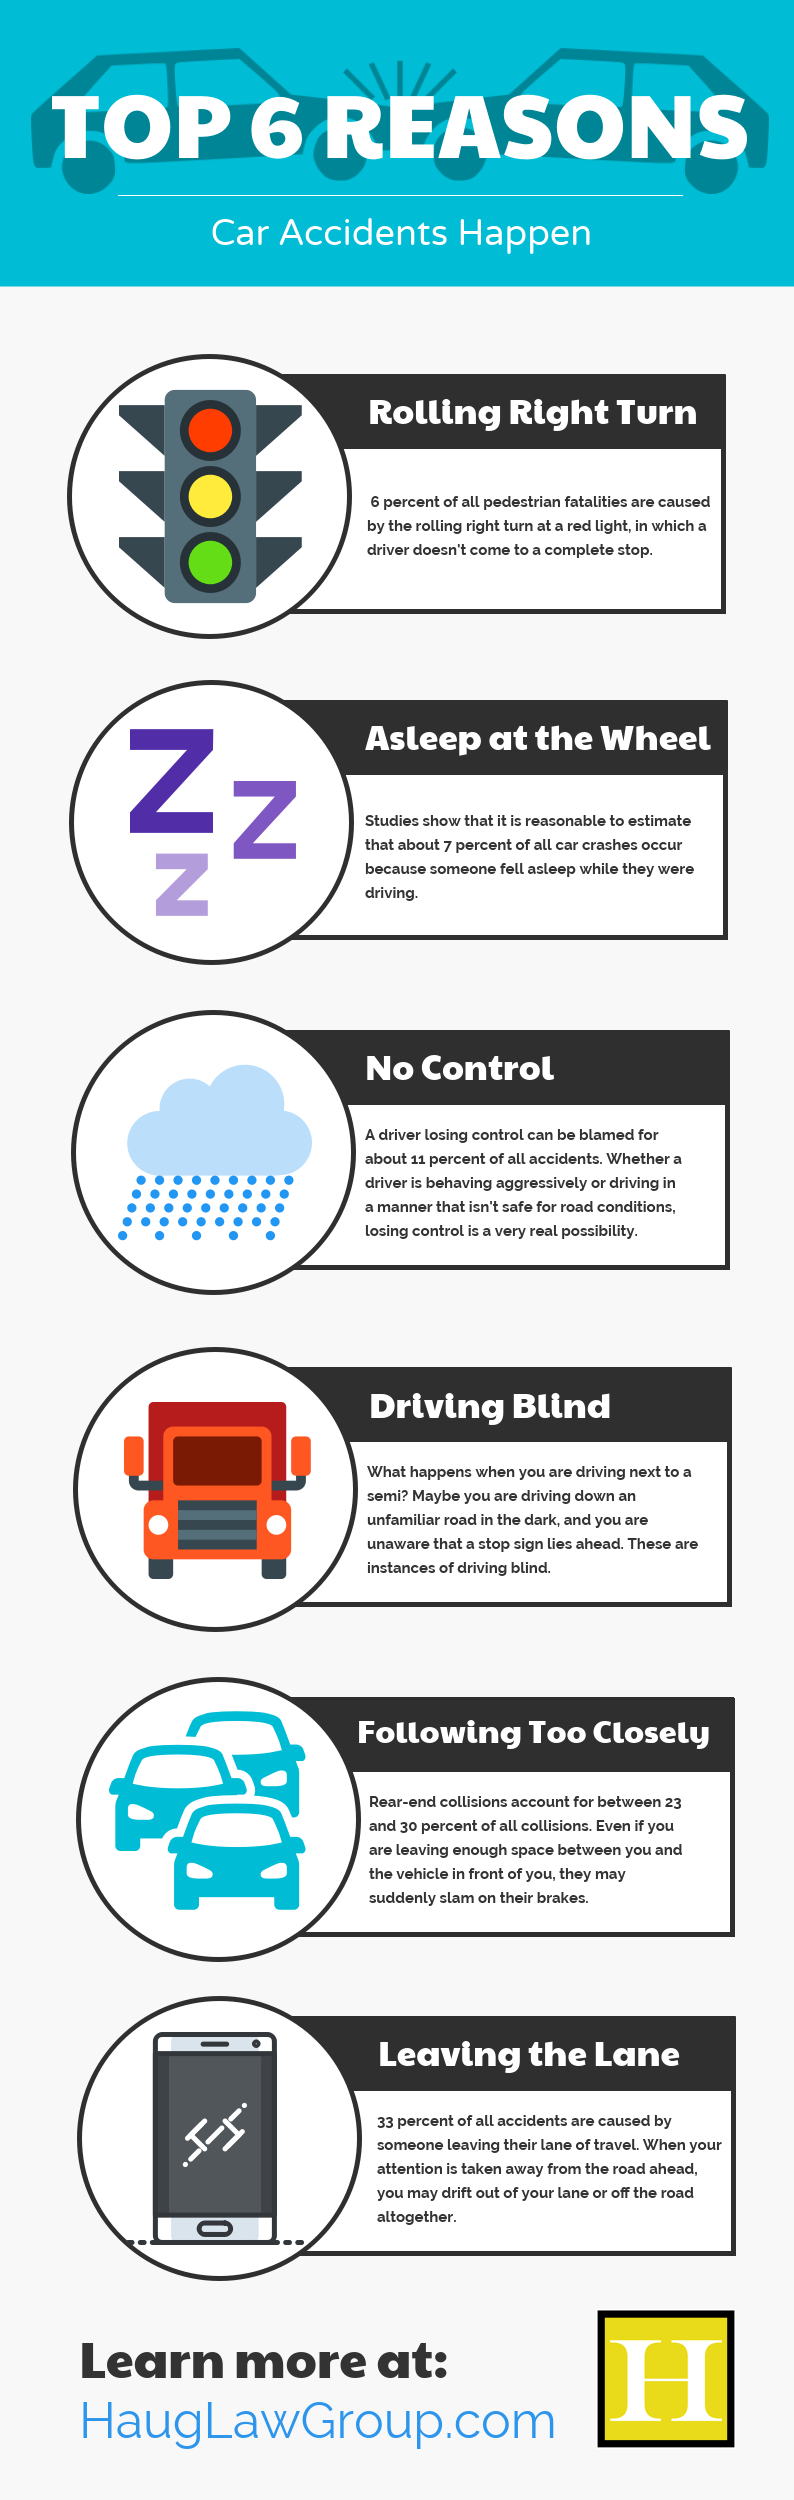 Top 6 reasons car accidents happen